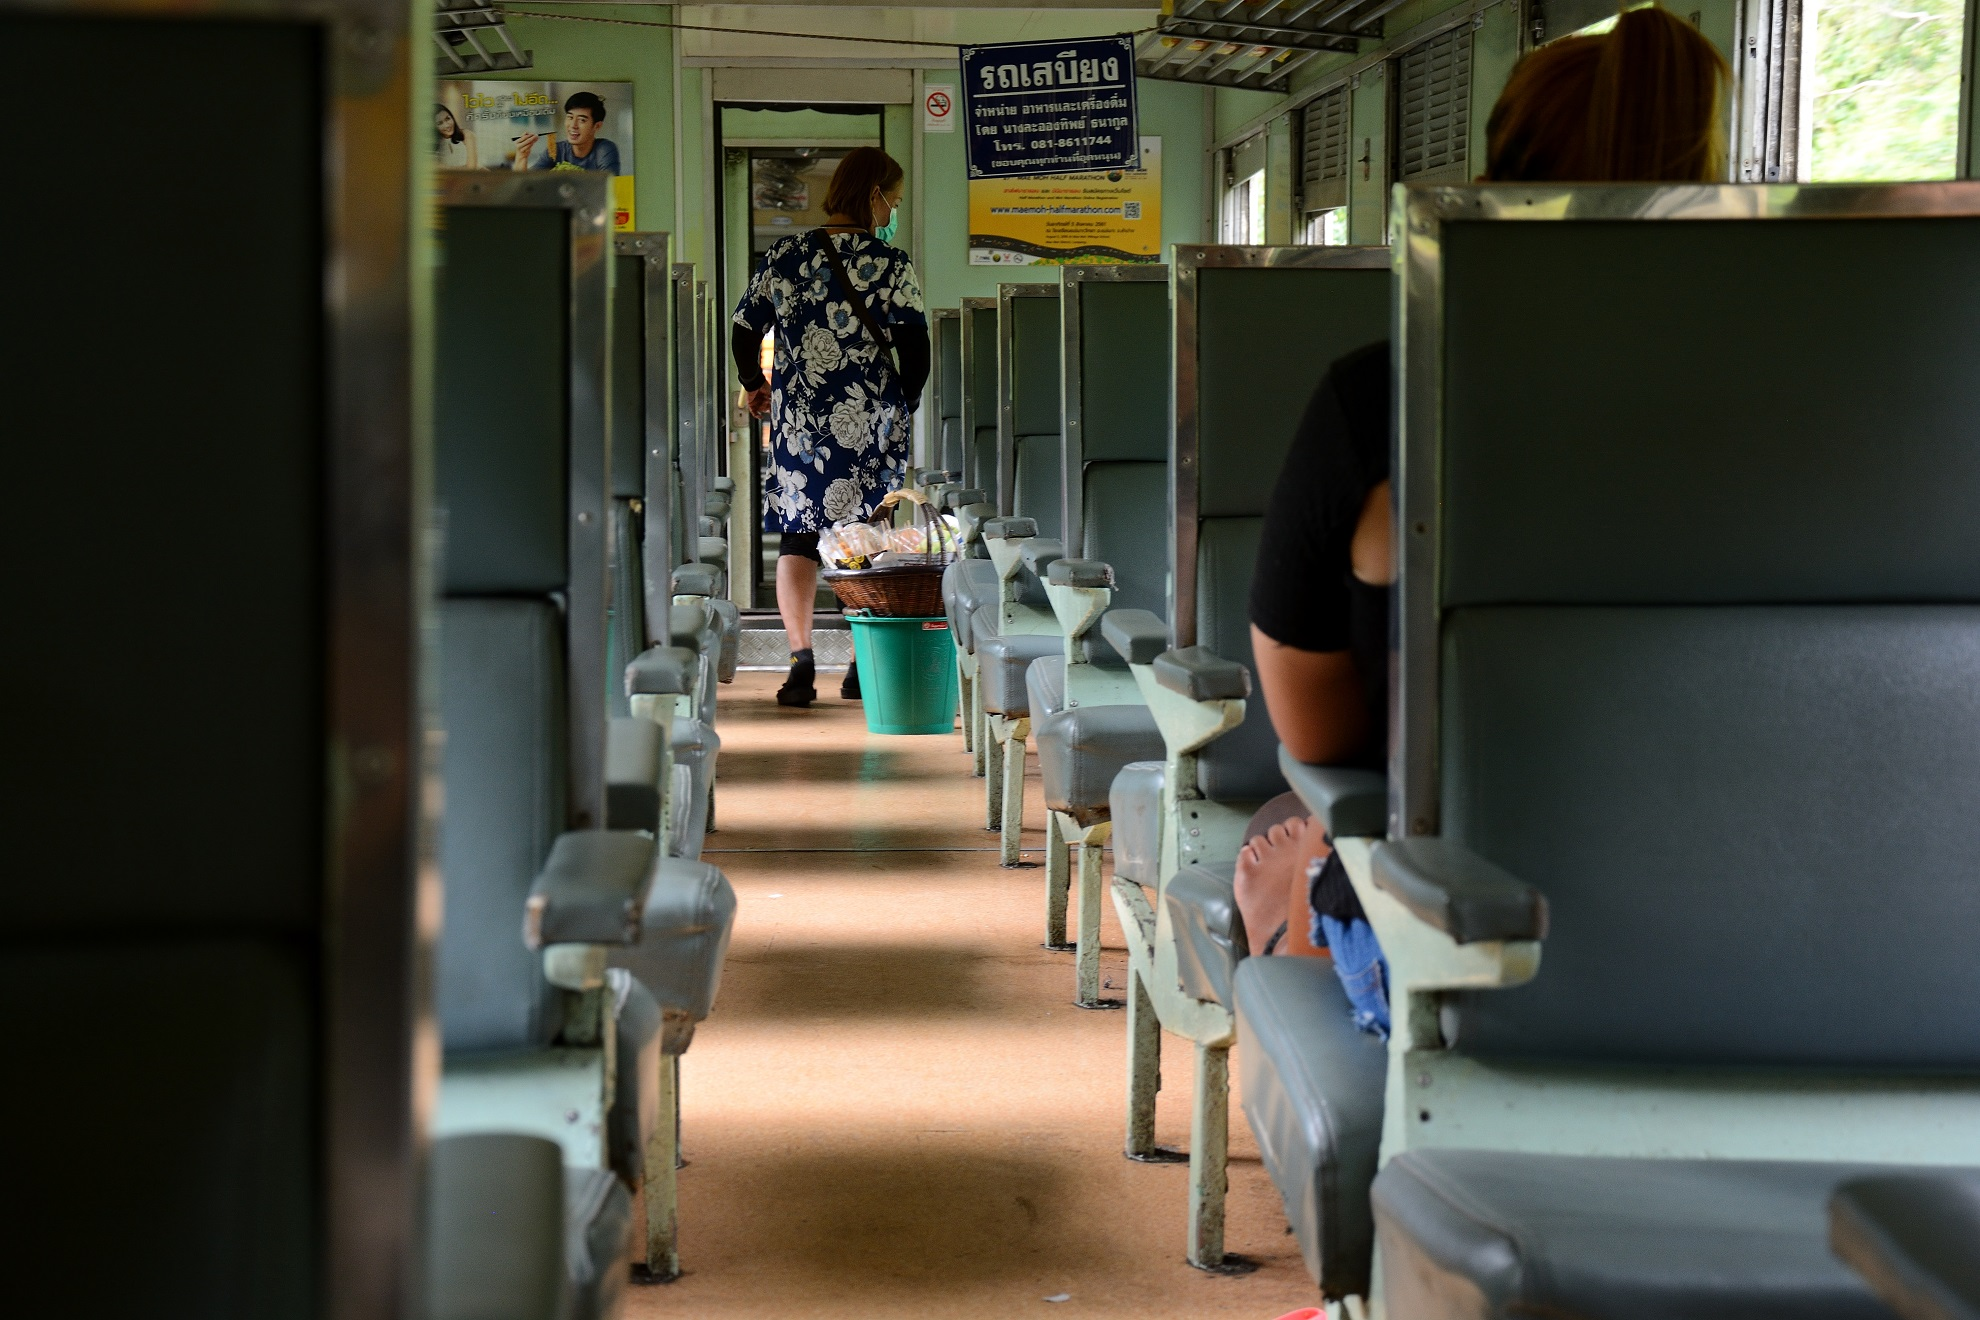 3rd class trains in Thailand